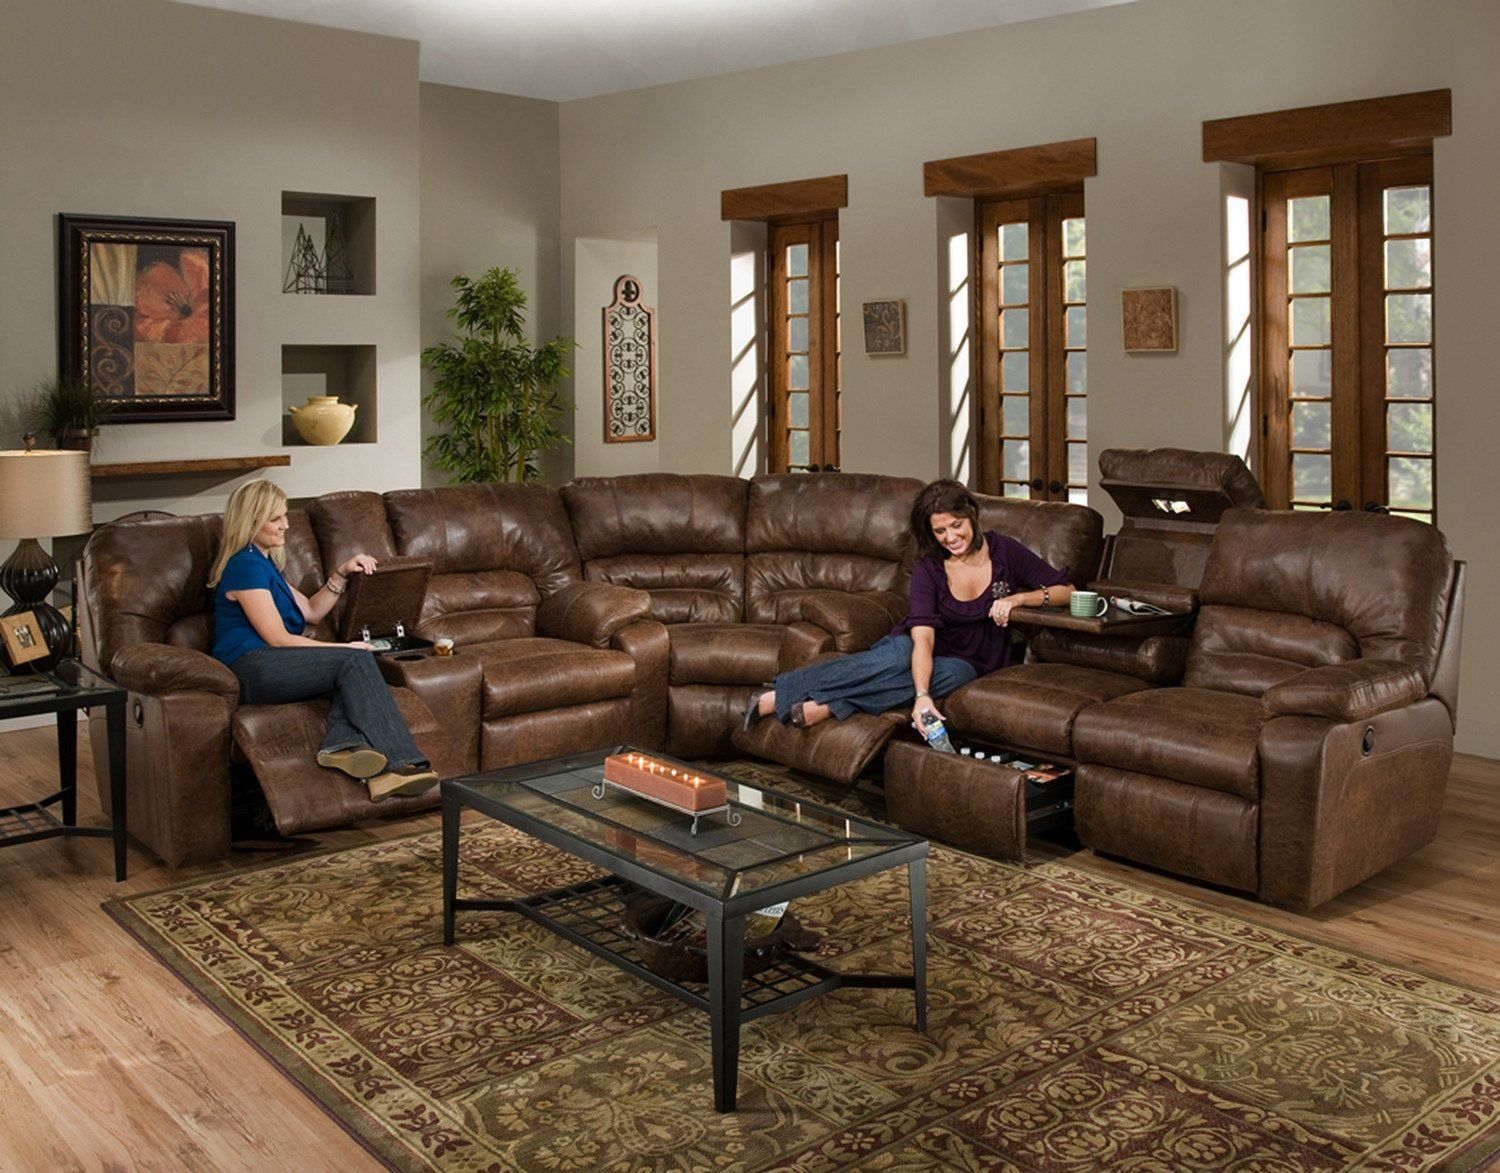 Color Brownmaterial Bonded Leathercondition New In Box Never Opened Measurements Sofa 91x40x With Images Brown Living Room Brown Living Room Decor Trendy Living Rooms